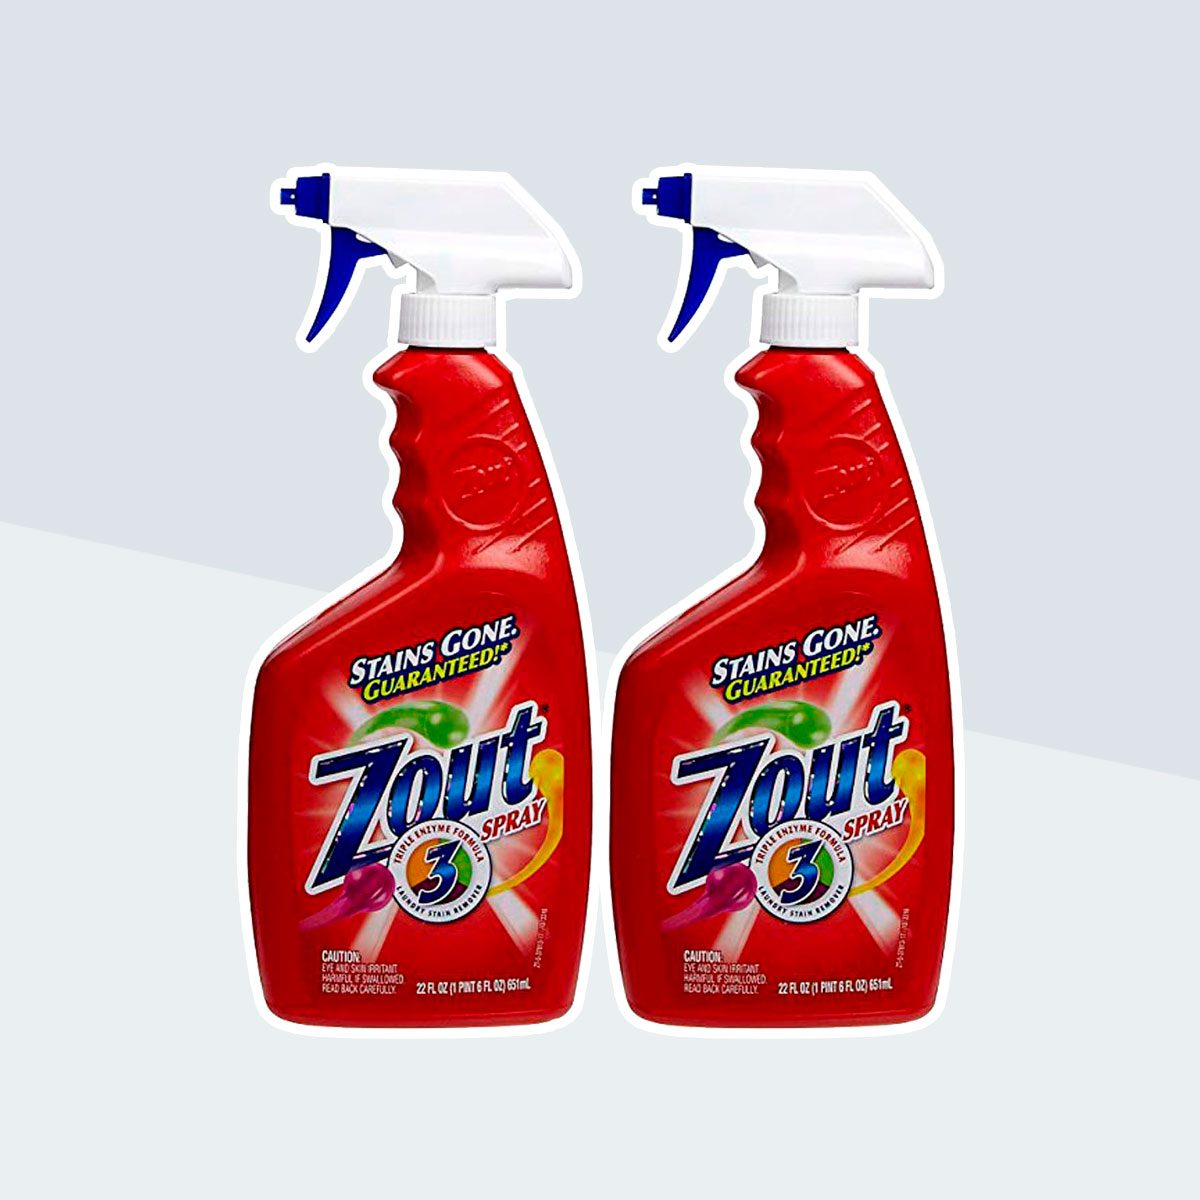 13 Top Reviewed Products That Will Help Remove Stains